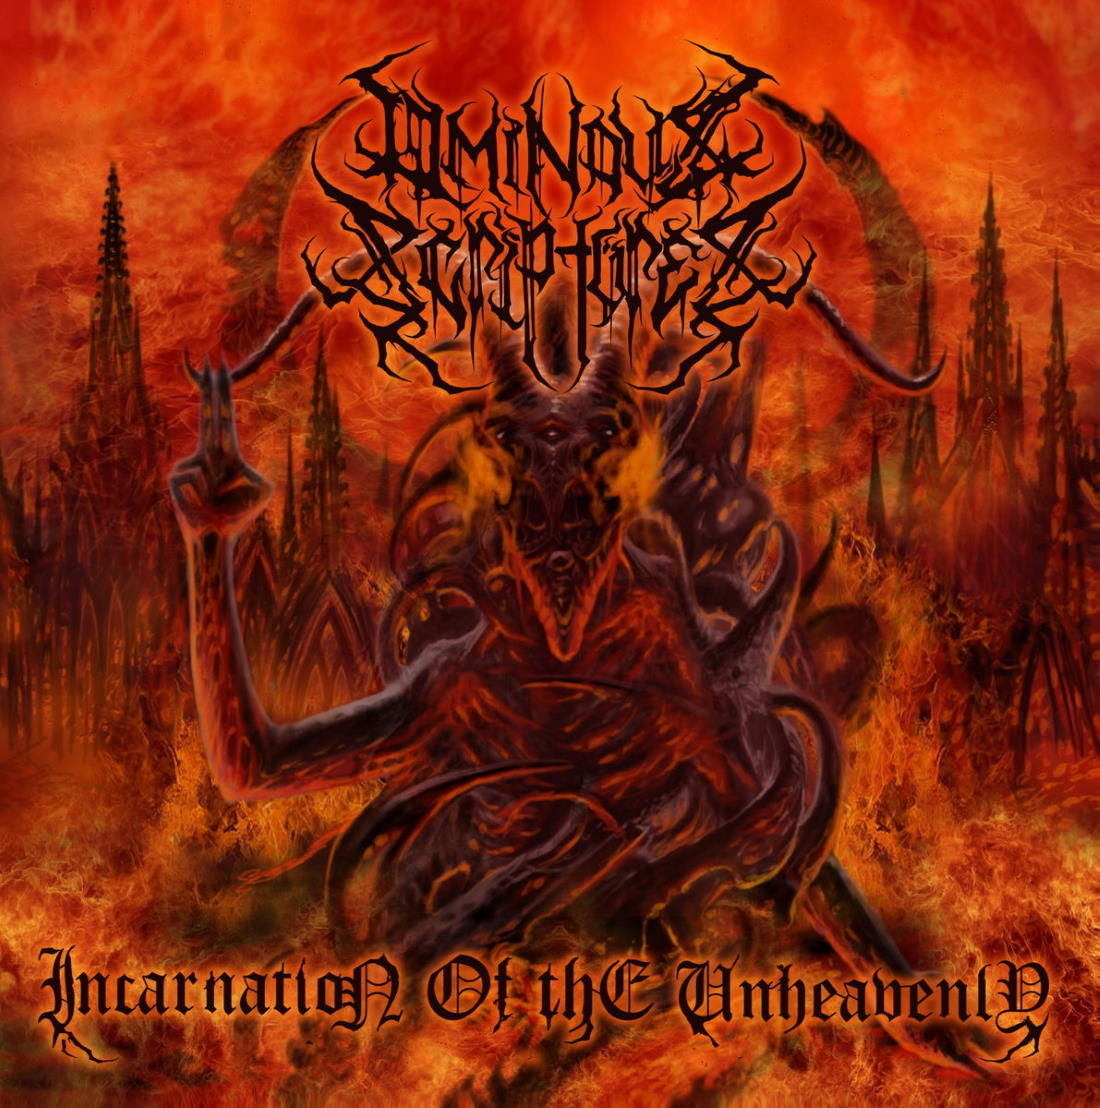 Ominous Scriptures - Incarnation of the Unheavenly